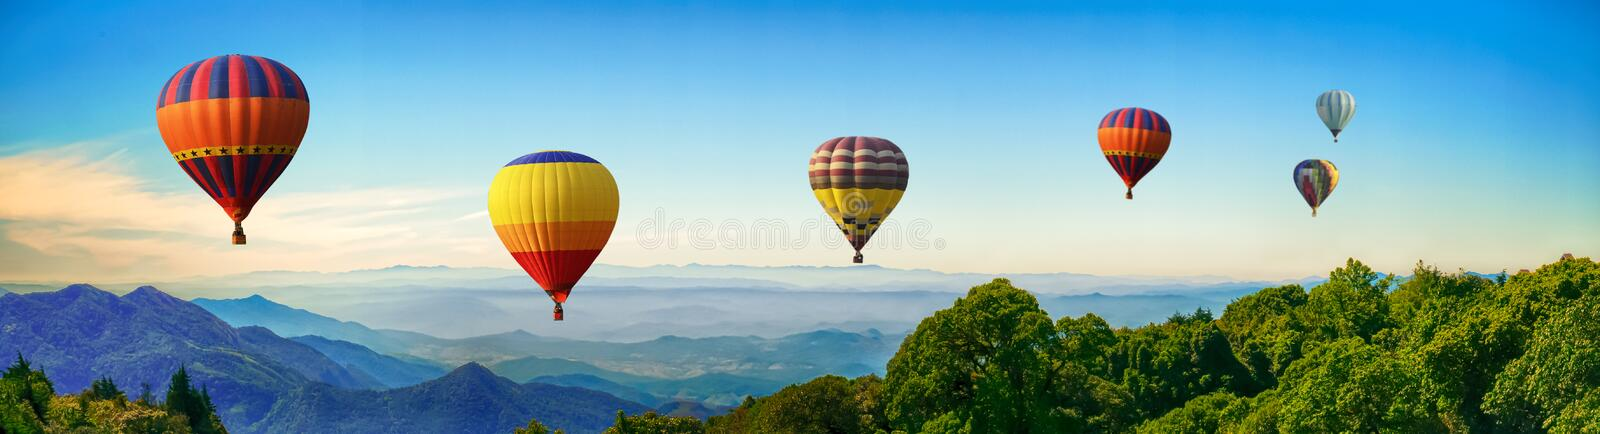 Panorama of mountain with hot air balloons on morning royalty free stock photos